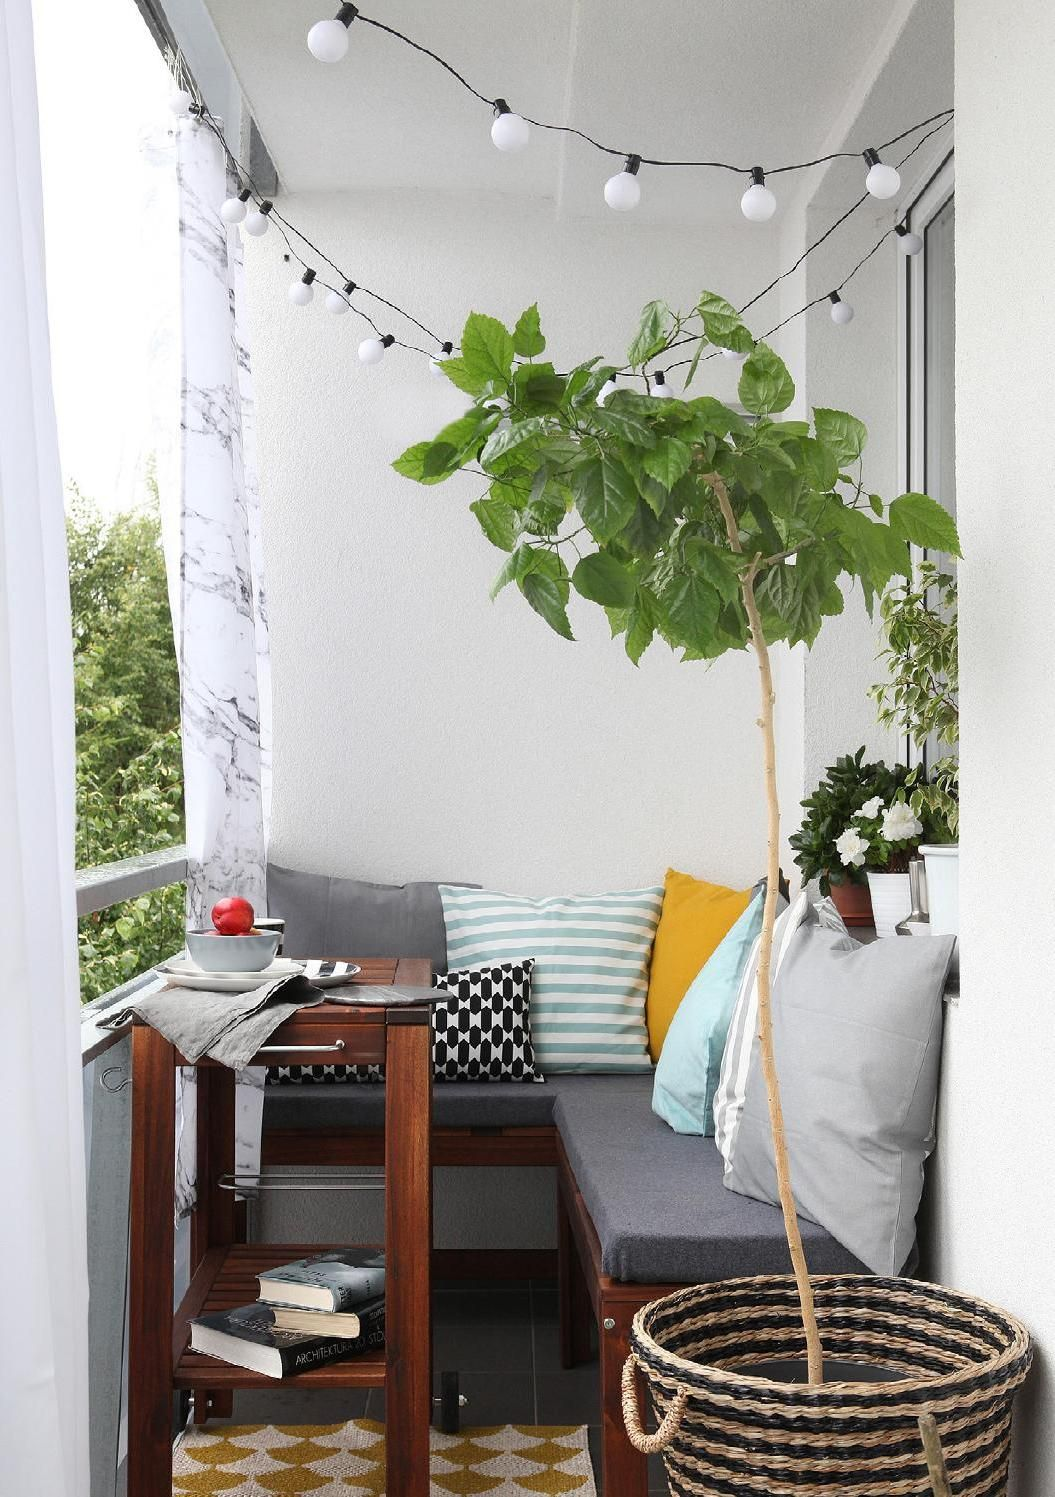 #ClippedOnIssuu from SOFFA magazine 04 / design travel food people home lifestyle - for the balcony, a space to relax, dine or work